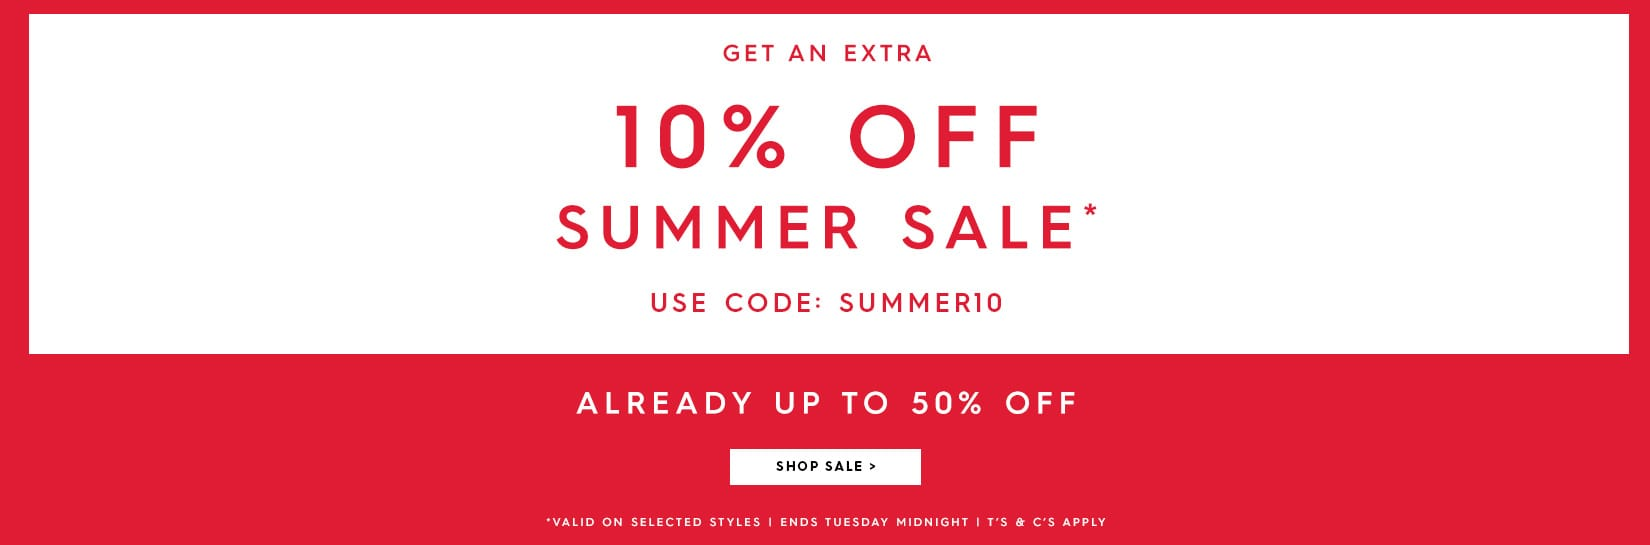 Woolovers Woolovers: extra 10% off summer sale products